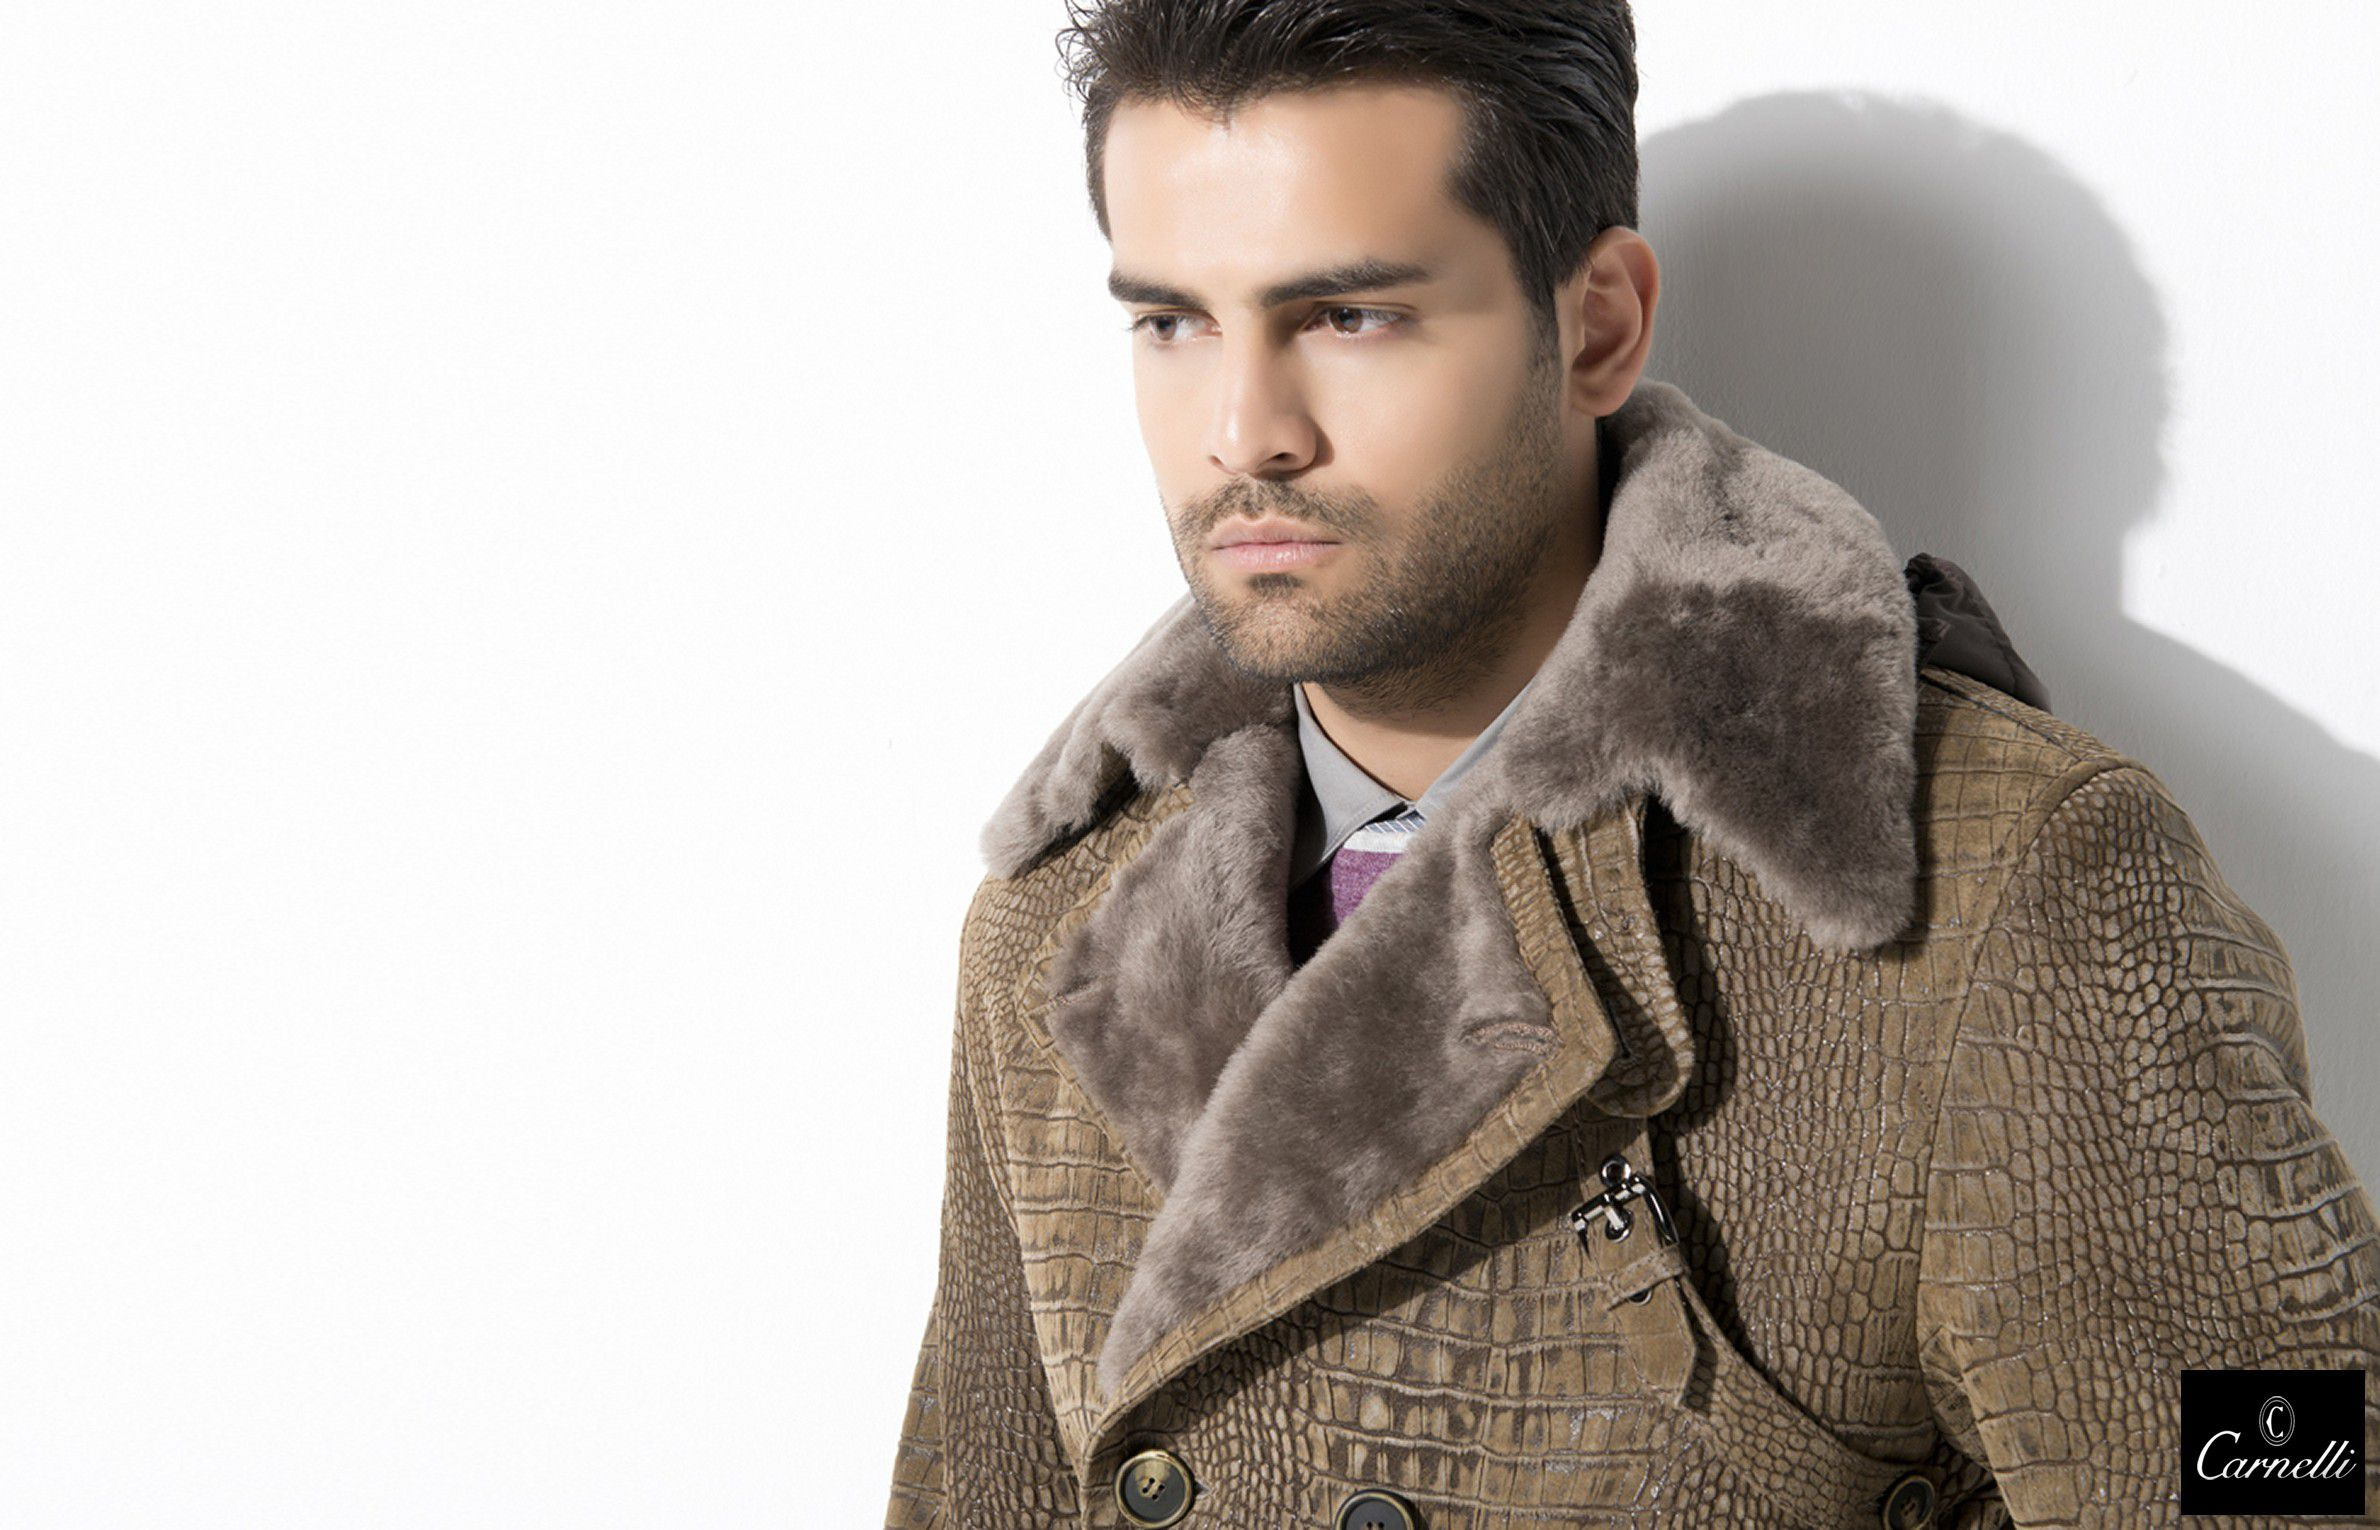 Collection Leather Clothing 2014 - Carnelli Leather